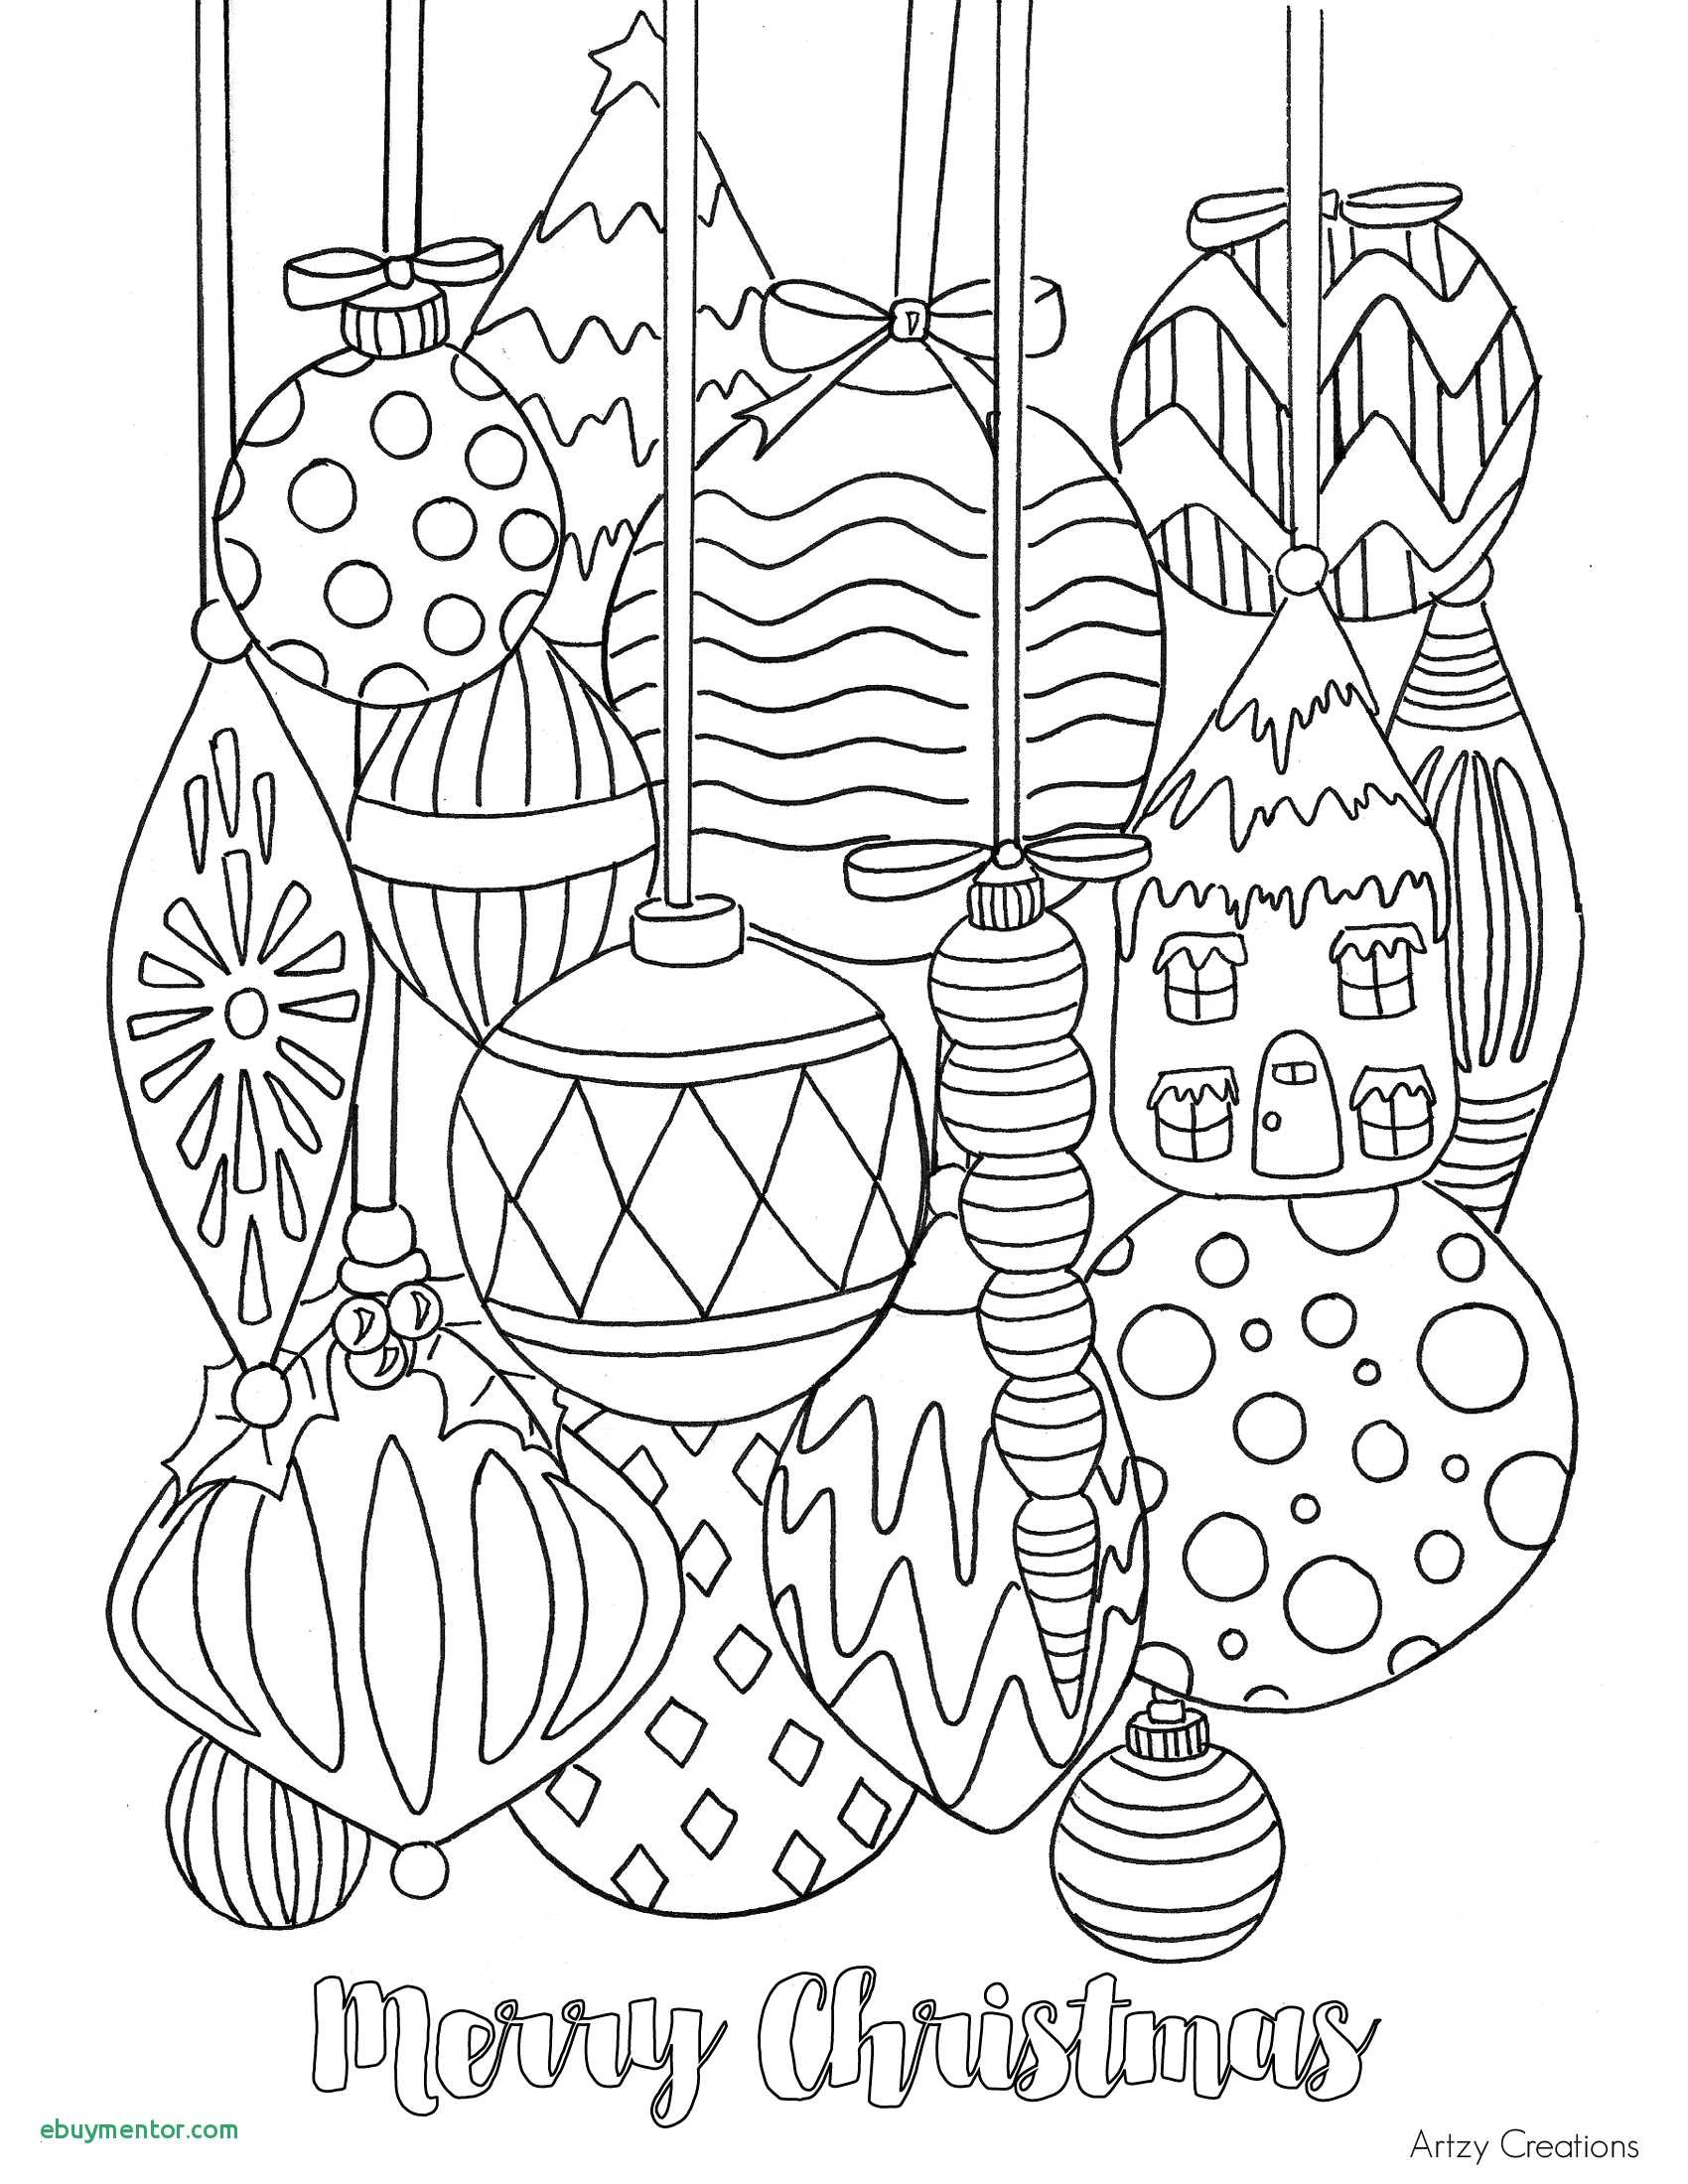 Free Printable Vintage Christmas Coloring Pages With Snoopy